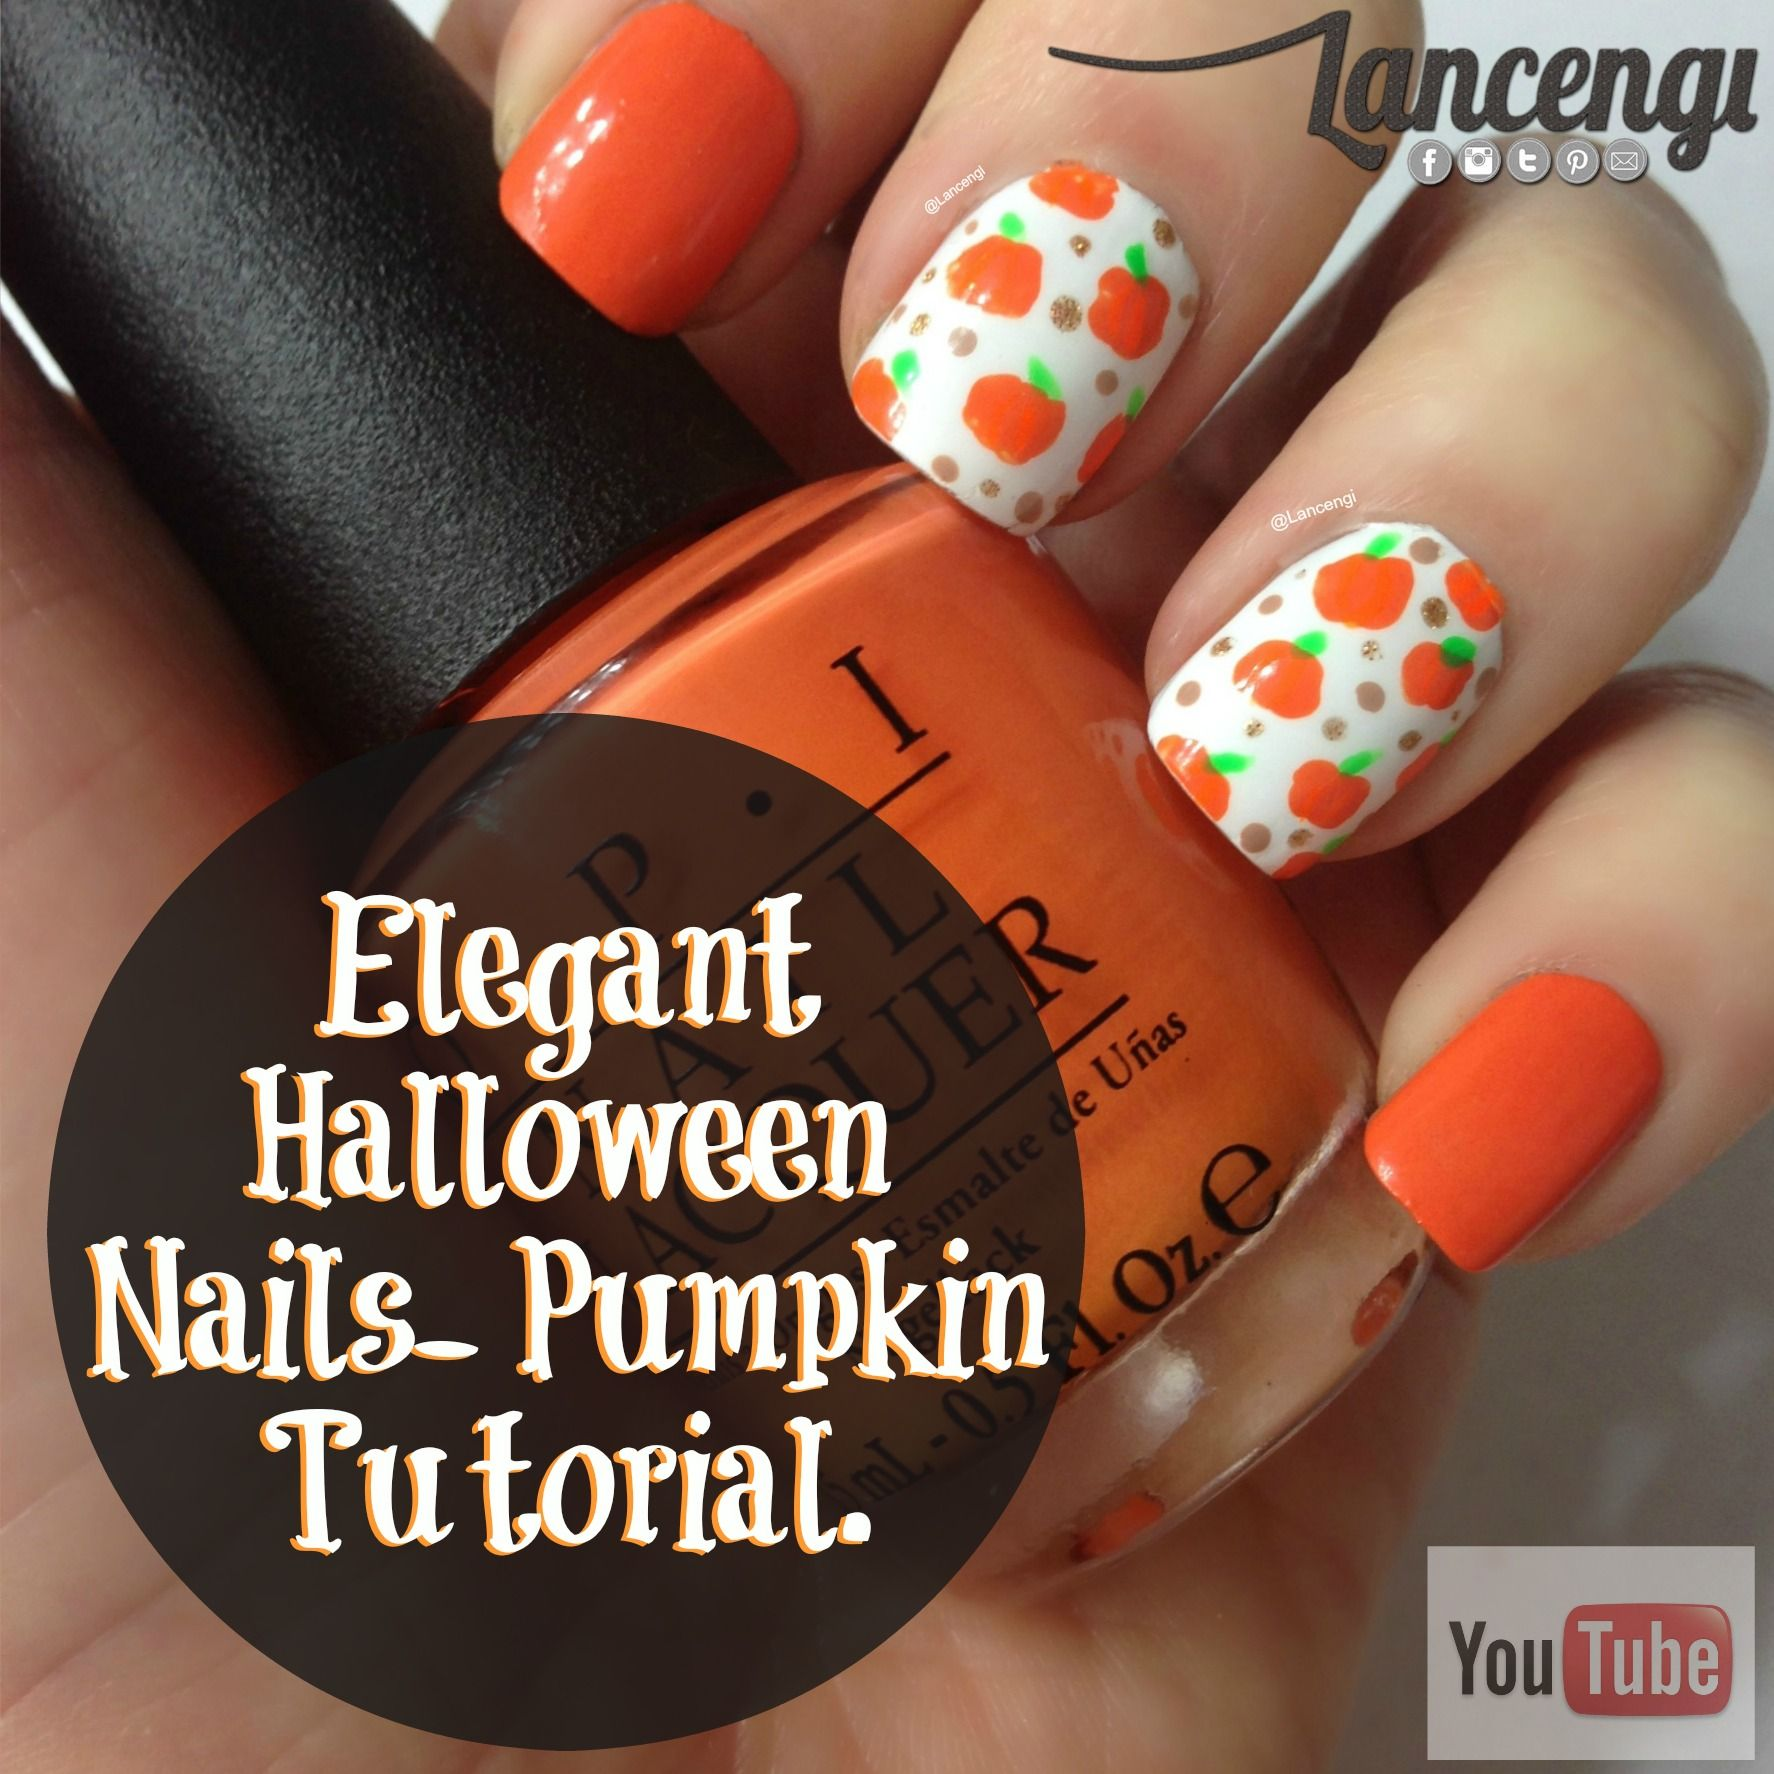 Nail Art Designs Tutorial Youtube: Fun Halloween Nails From Lancengi.com Cozy Up In Sweater